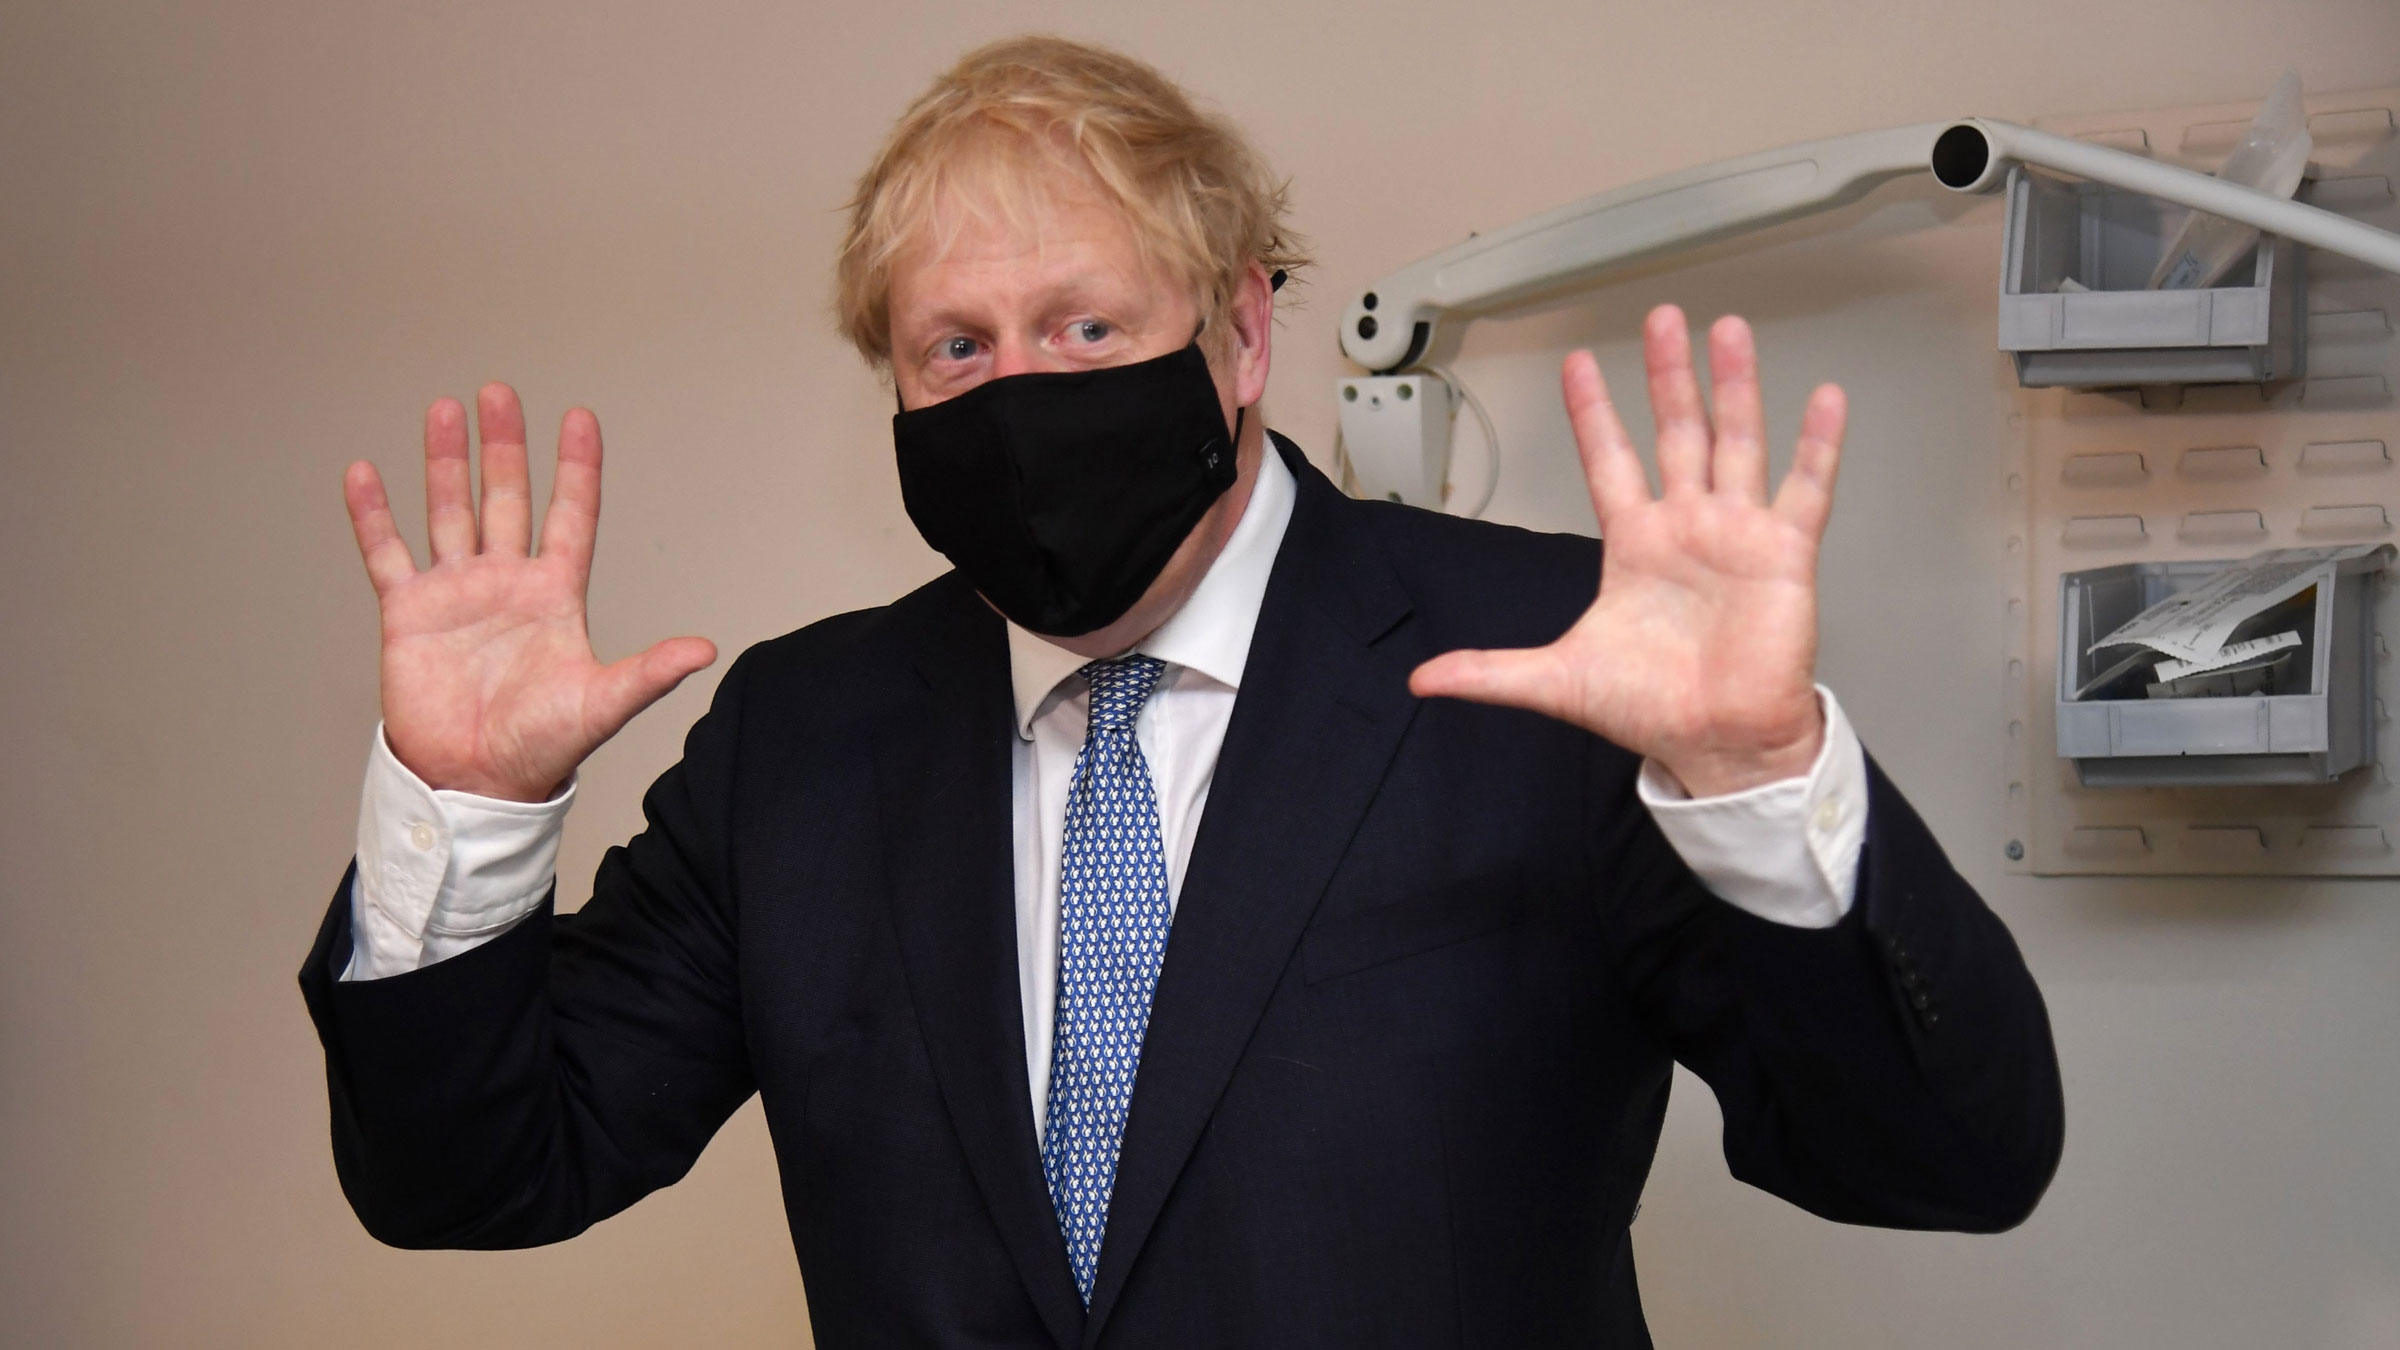 British Prime Minister Boris Johnson gestures during a visit to the Tollgate Medical Centre in London on Friday.